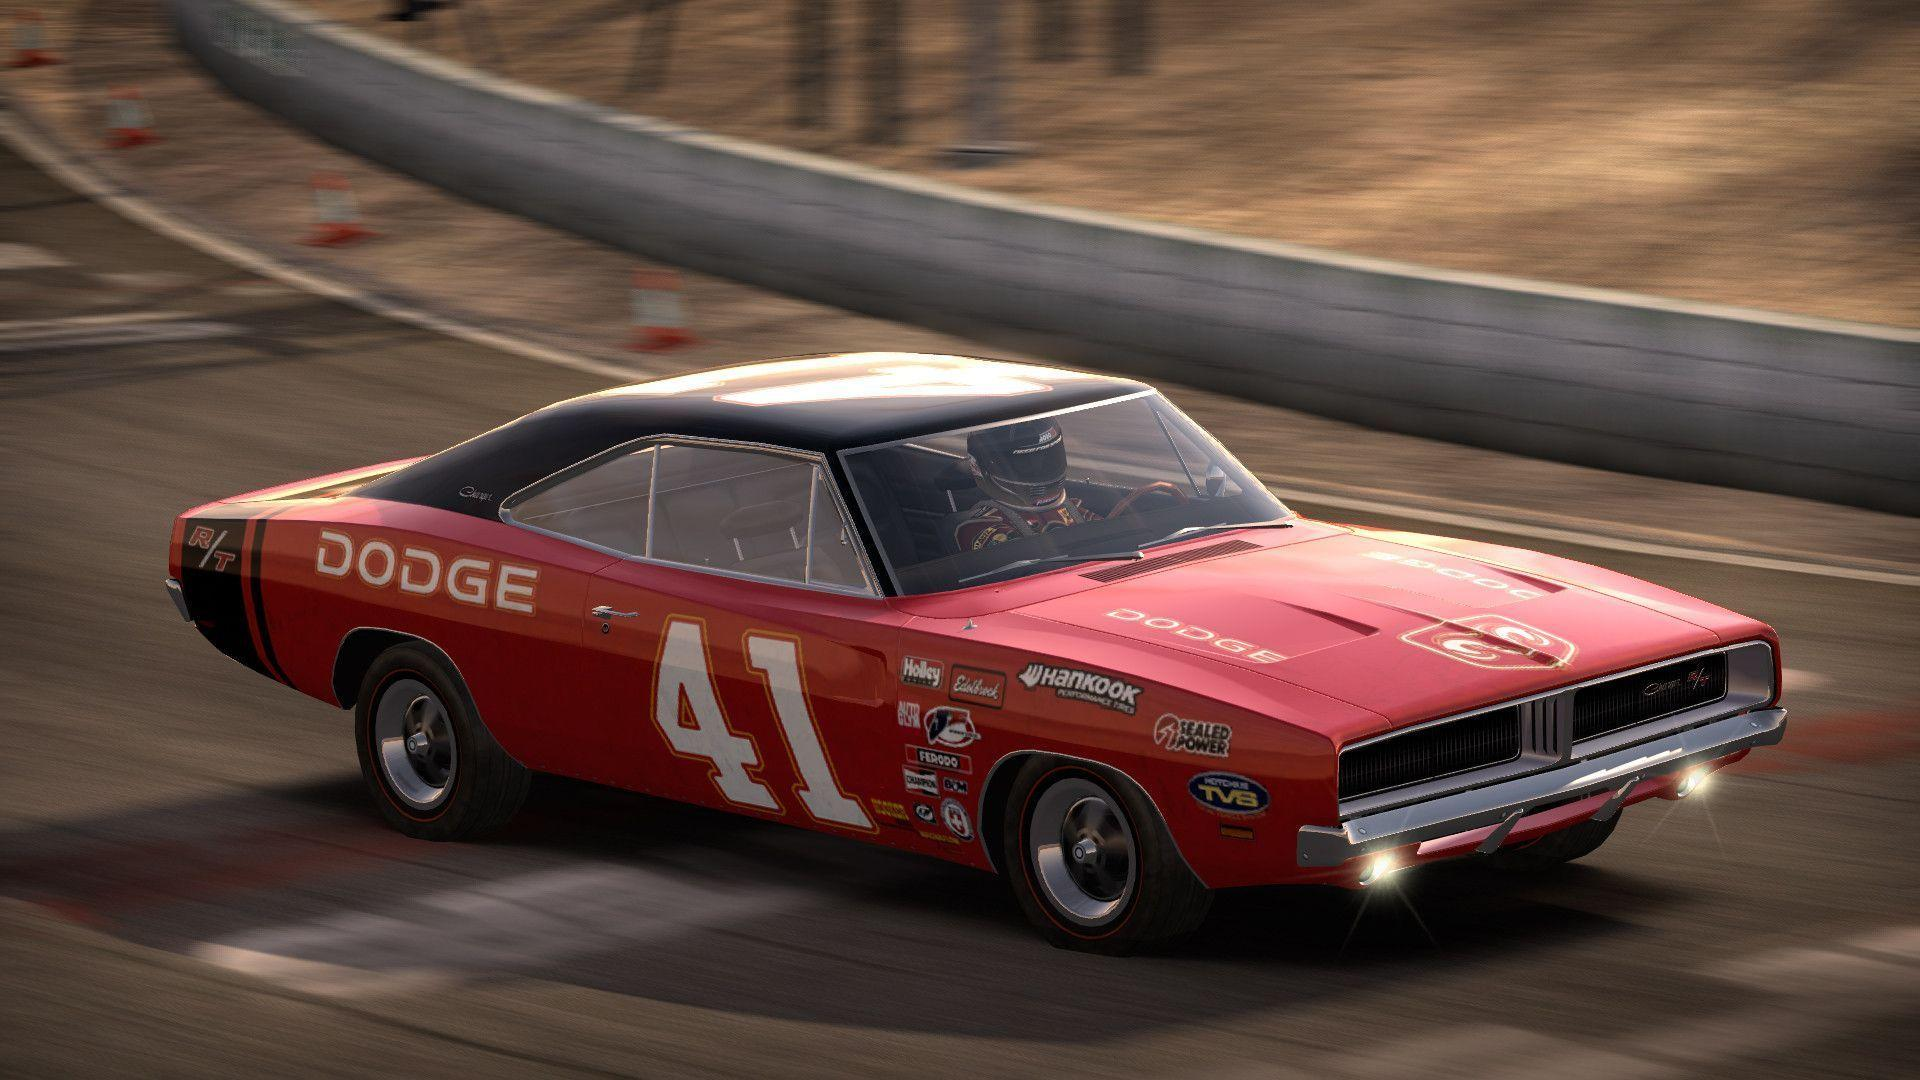 Dodge Charger Wallpapers | HD Wallpapers Base